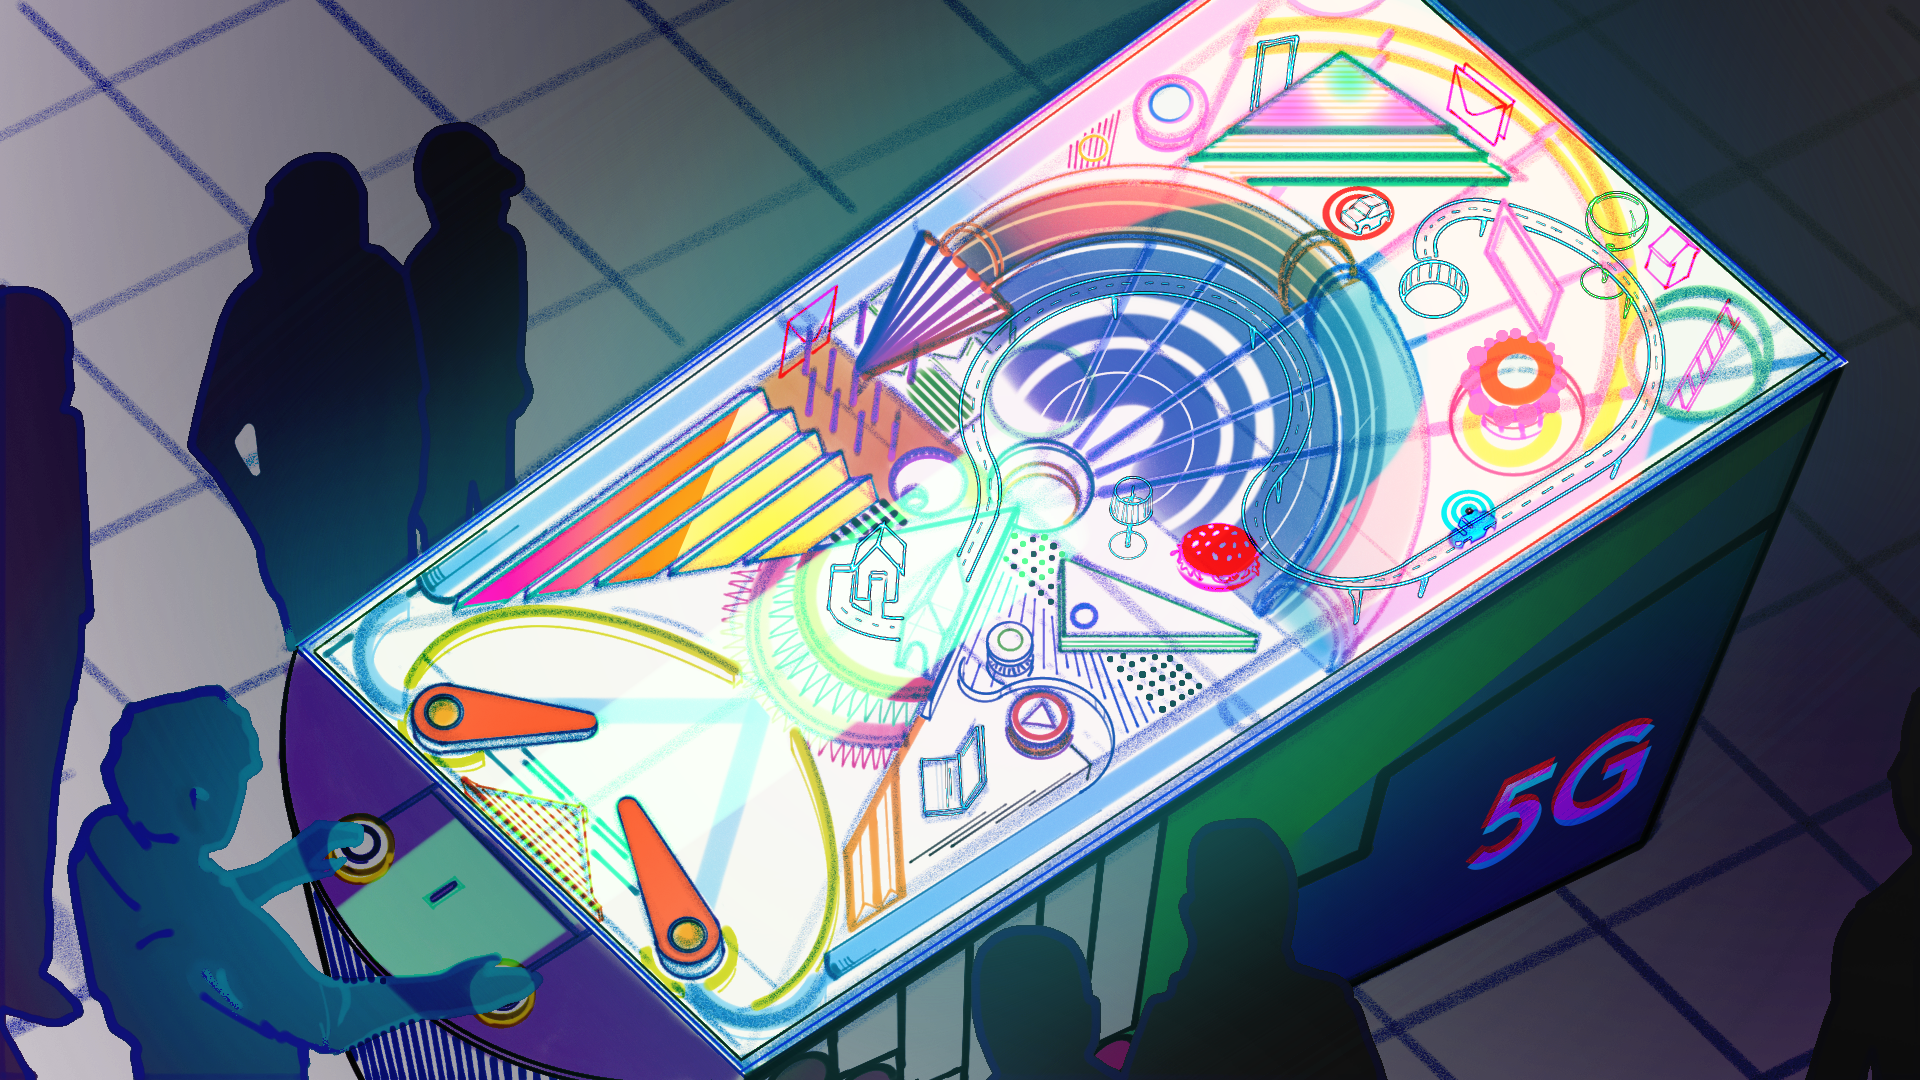 Experiential  pinball wizards.